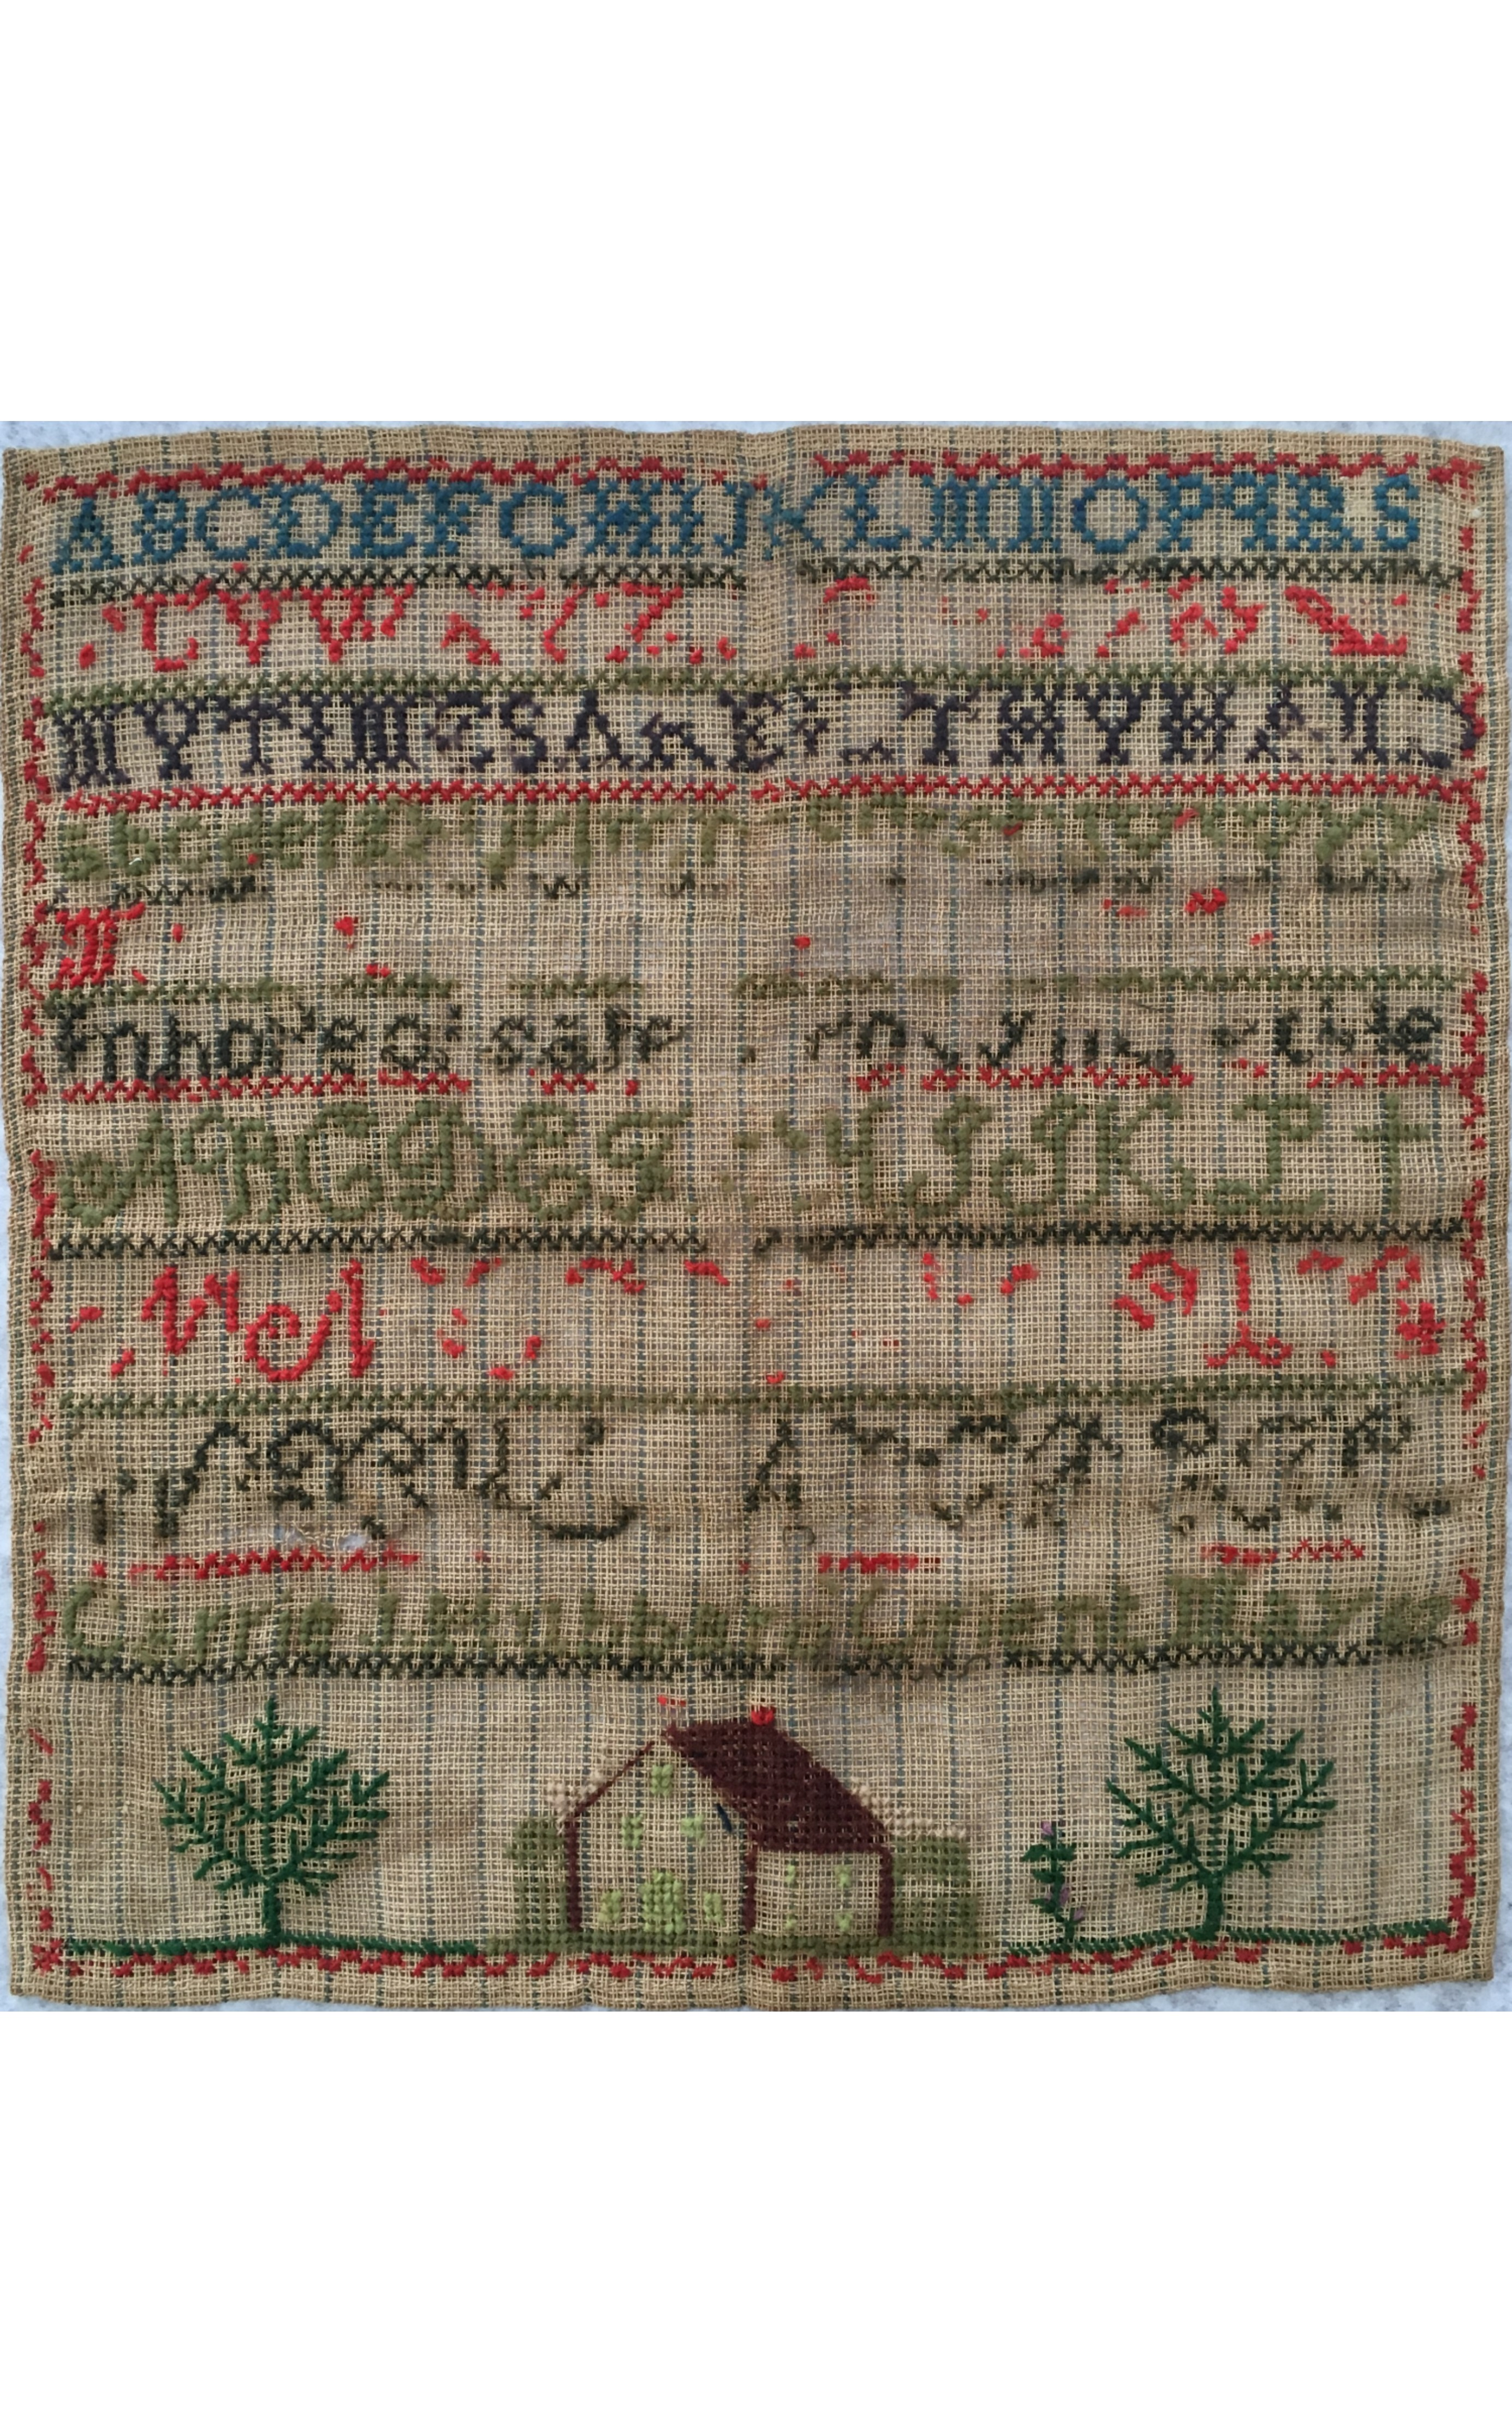 "<h3>Carrie J. Hubbard Sampler</h3> <br> <p><strong>Ca. 1865</strong></p> <p><strong>Gift of William Steeple Davis</strong></p> <br> <p>This sampler was made by the mother of William Steeple Davis (1884-1961), an artist and photographer who lived his entire life in Orient. A very large collection of his photographs, paintings, childhood drawings, etc. form an important part of the holdings of OHS. His mother, Carrie (1853-1950), the daughter of Jane Culver Hubbard and Smith Hubbard, grew up in Orient and made this sampler when she was fourteen years old. On the last line, she has stitched her name followed by ""Orient 67"". Several sections of the sampler have virtually disappeared, but fortunately her name and charming depiction of trees and a house remain legible. Carrie Hubbard Davis is the subject of the book, <em>Captain's Daughter, Coasterman's Wife</em>, written by Joan Druett and published by OHS in 1995. She is also featured prominently in a book about her mother, <em>In Her Own Name</em>, written by Fredrica Wachsberger and published in 2015 by OHS.</p>"